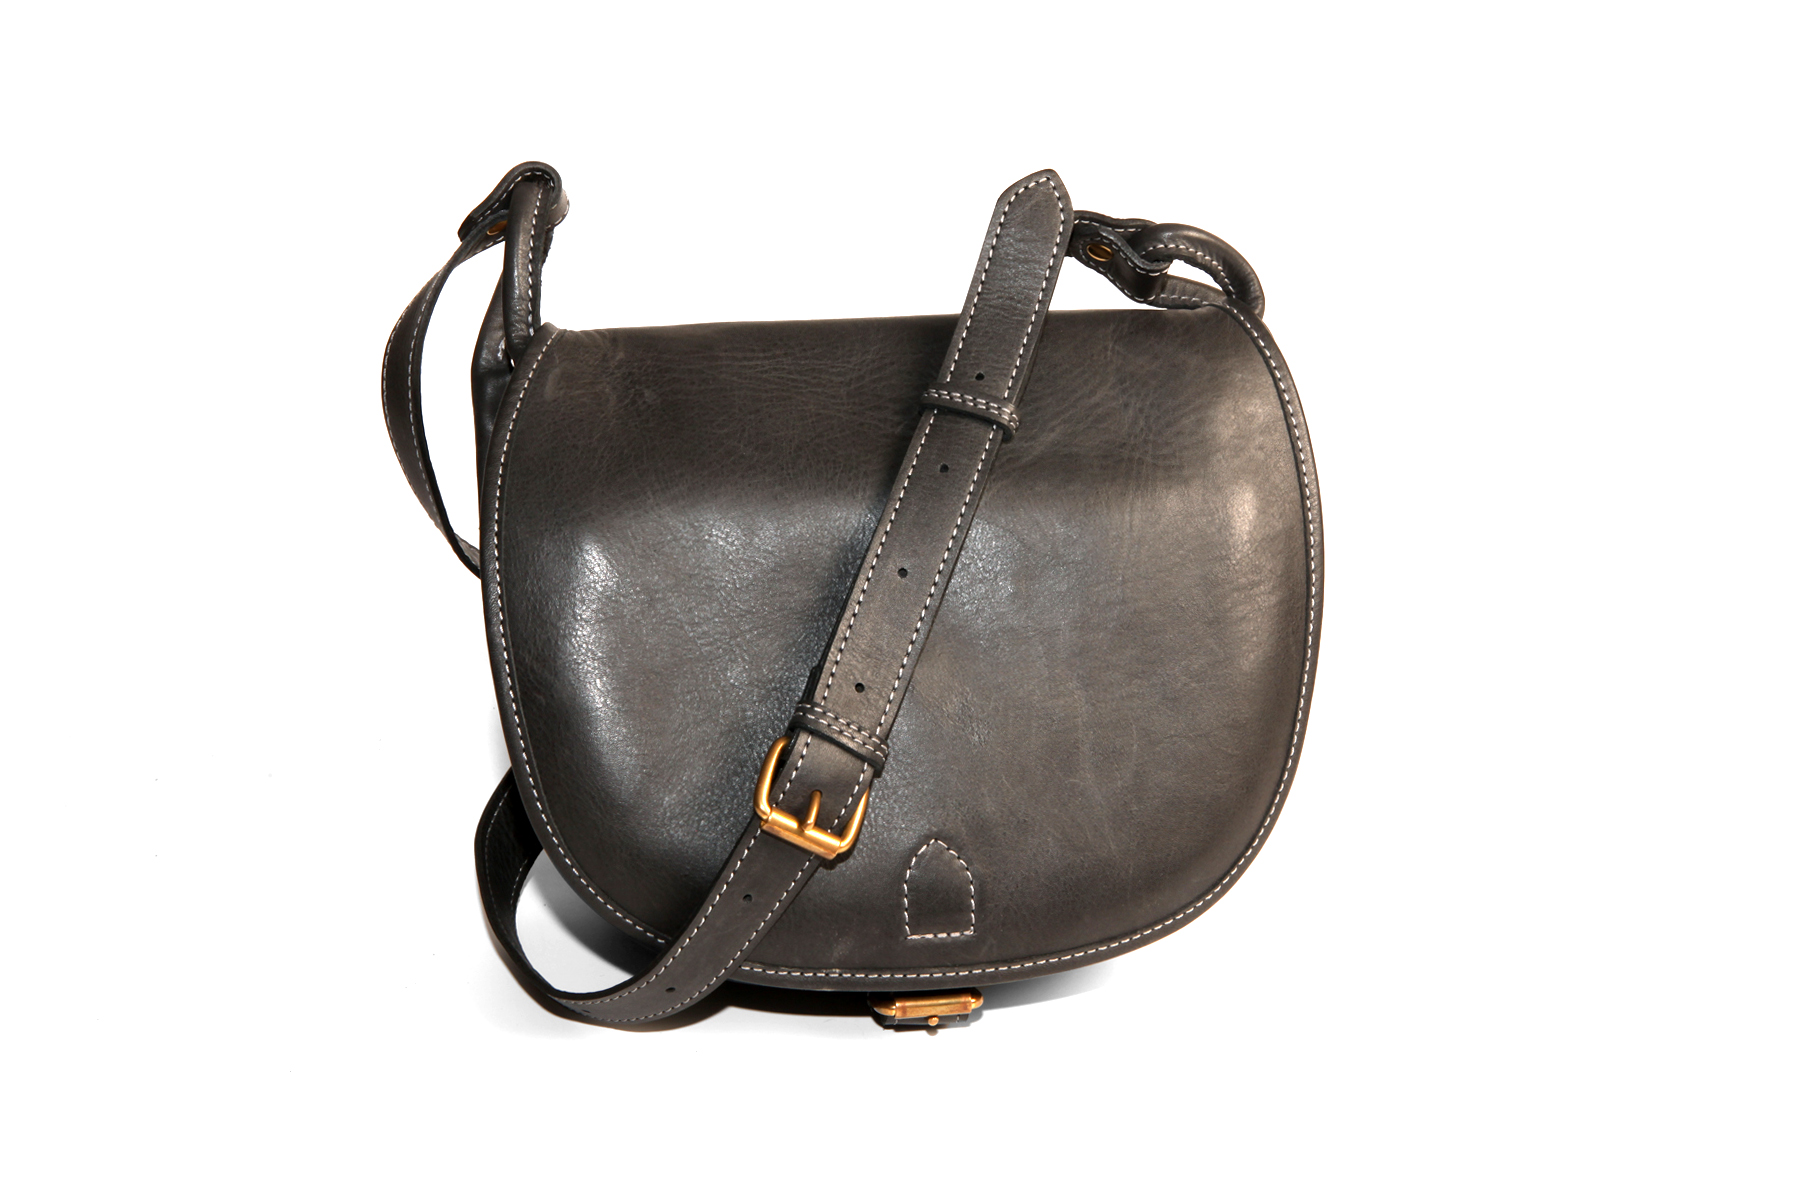 Mahiout Black Powder bag in grey leather